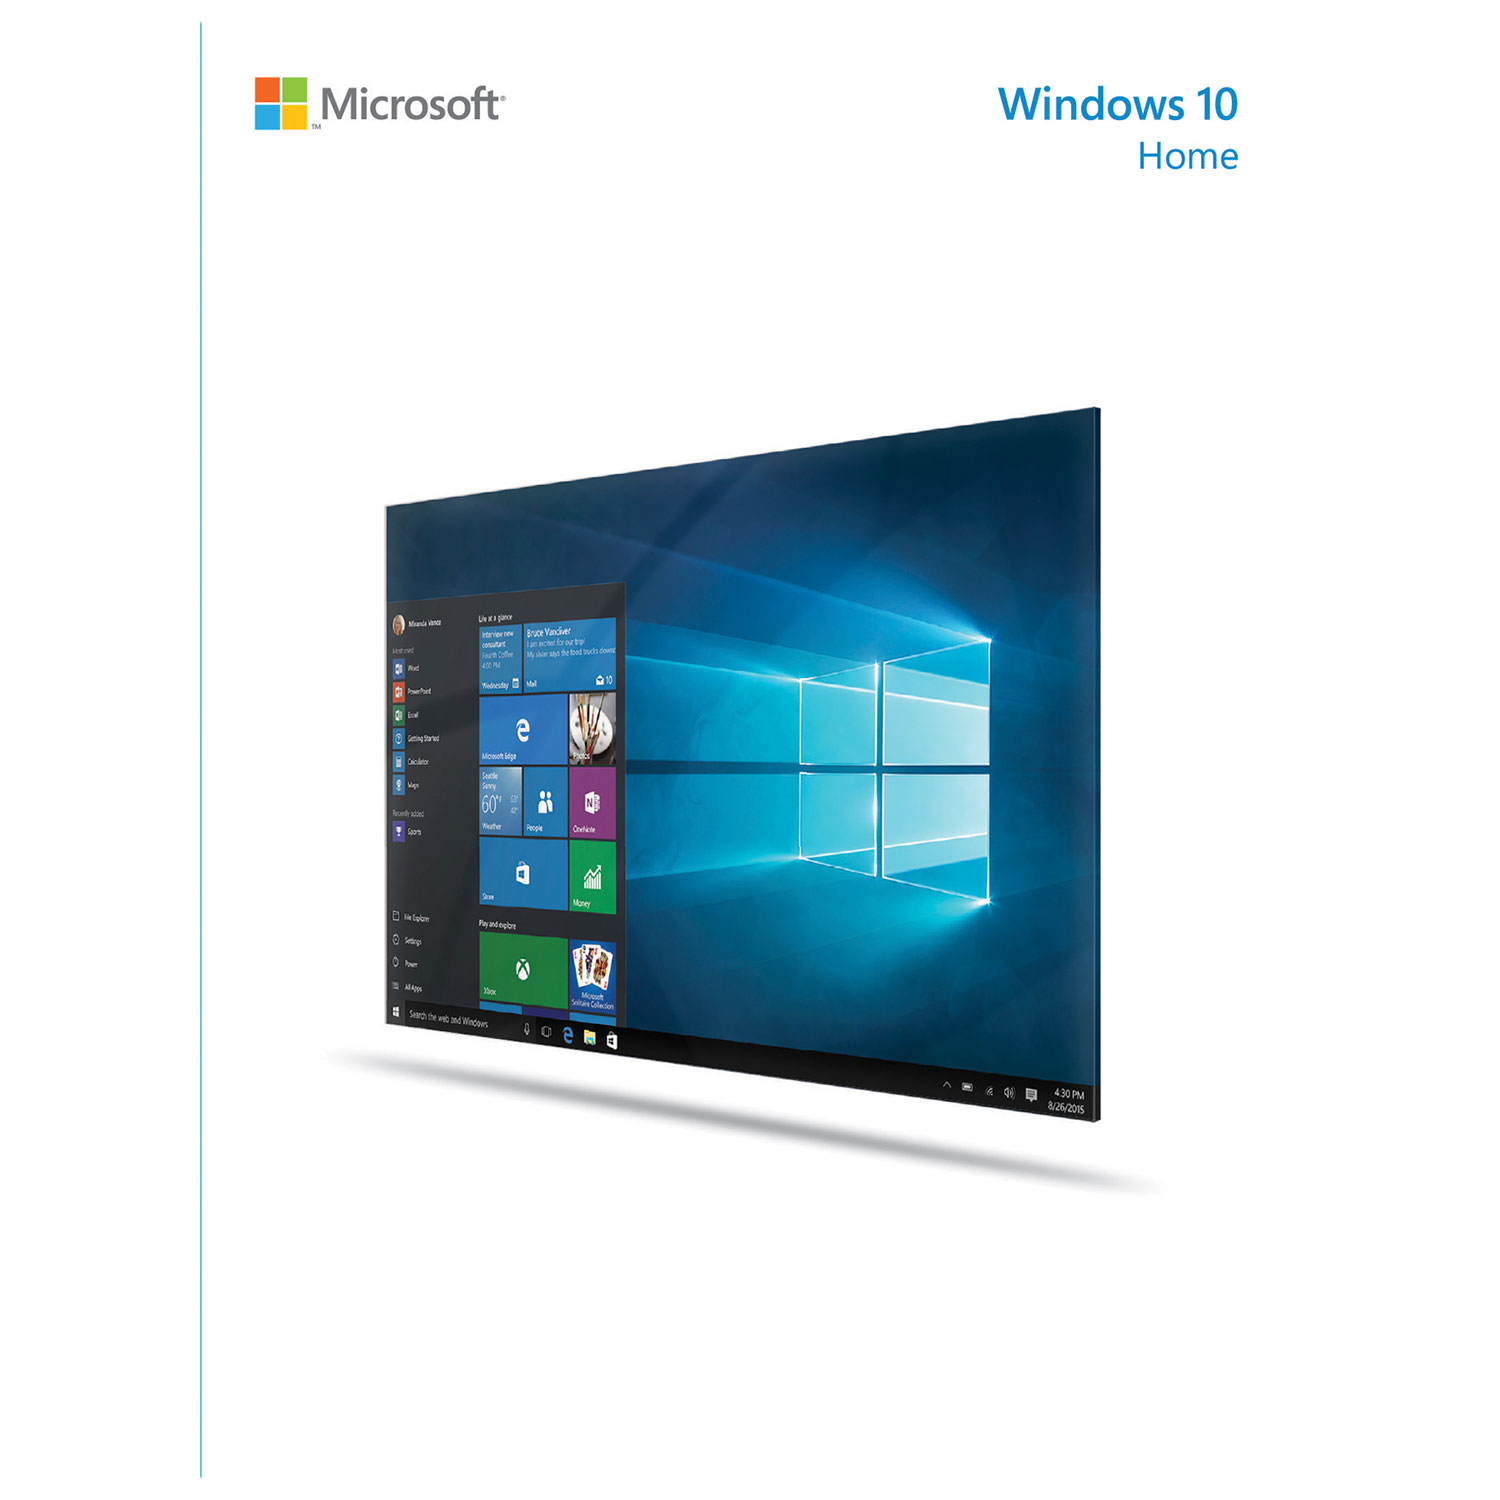 Research paper topic on computer operating systems?